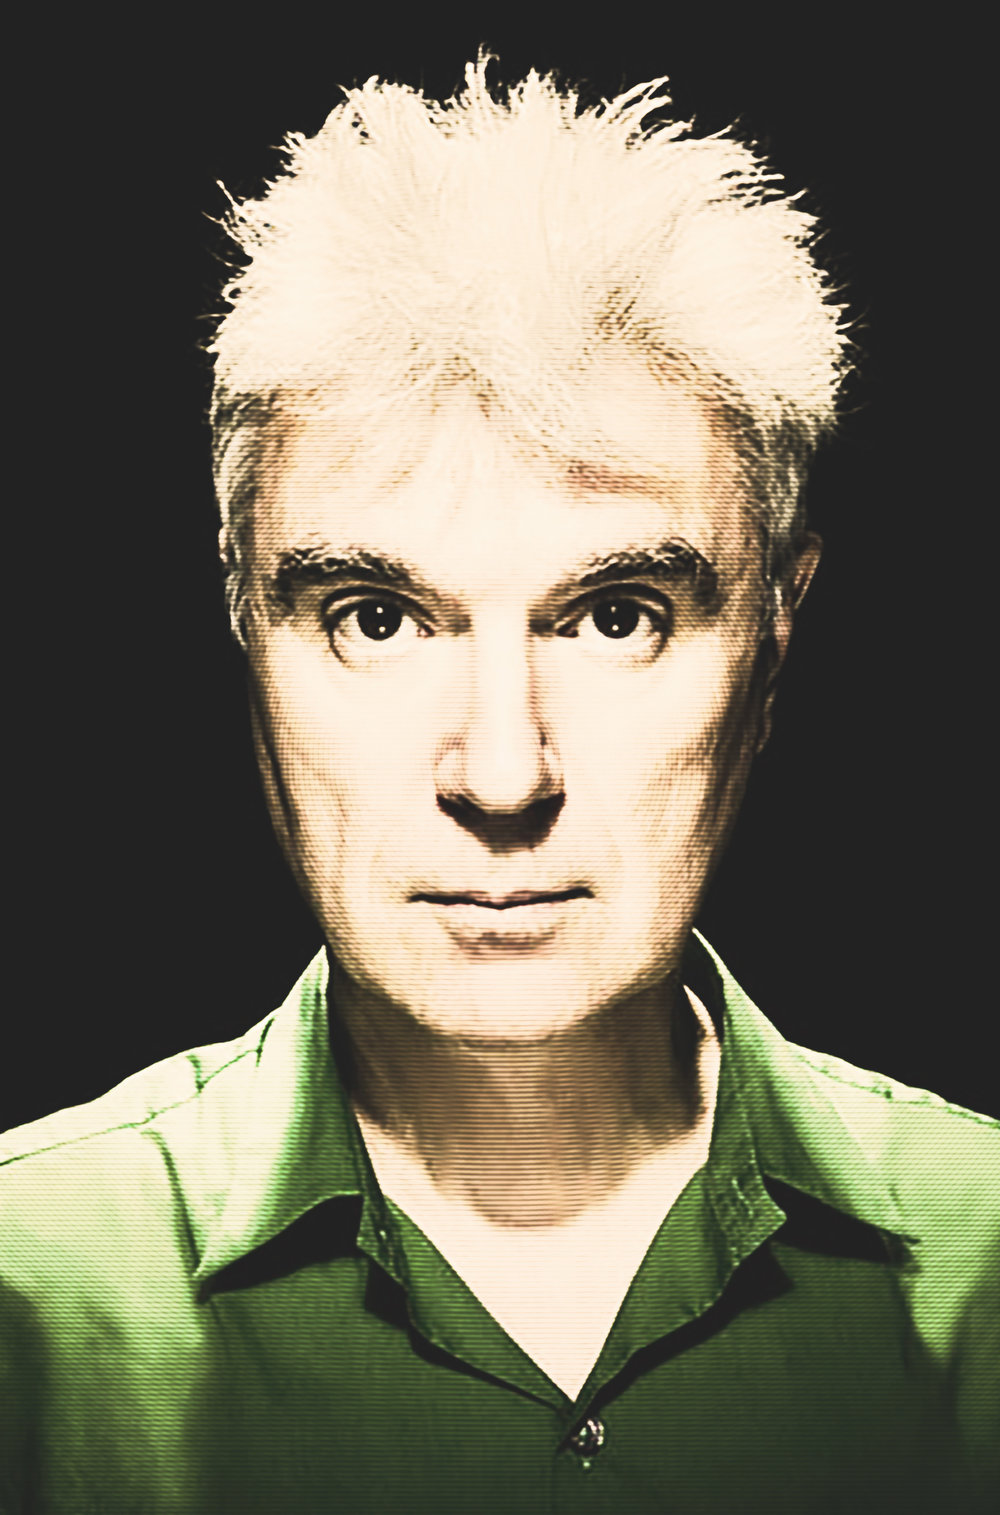 Interview with  David Byrne , former Talking Heads frontman, about his concept album  Here Lies Love .